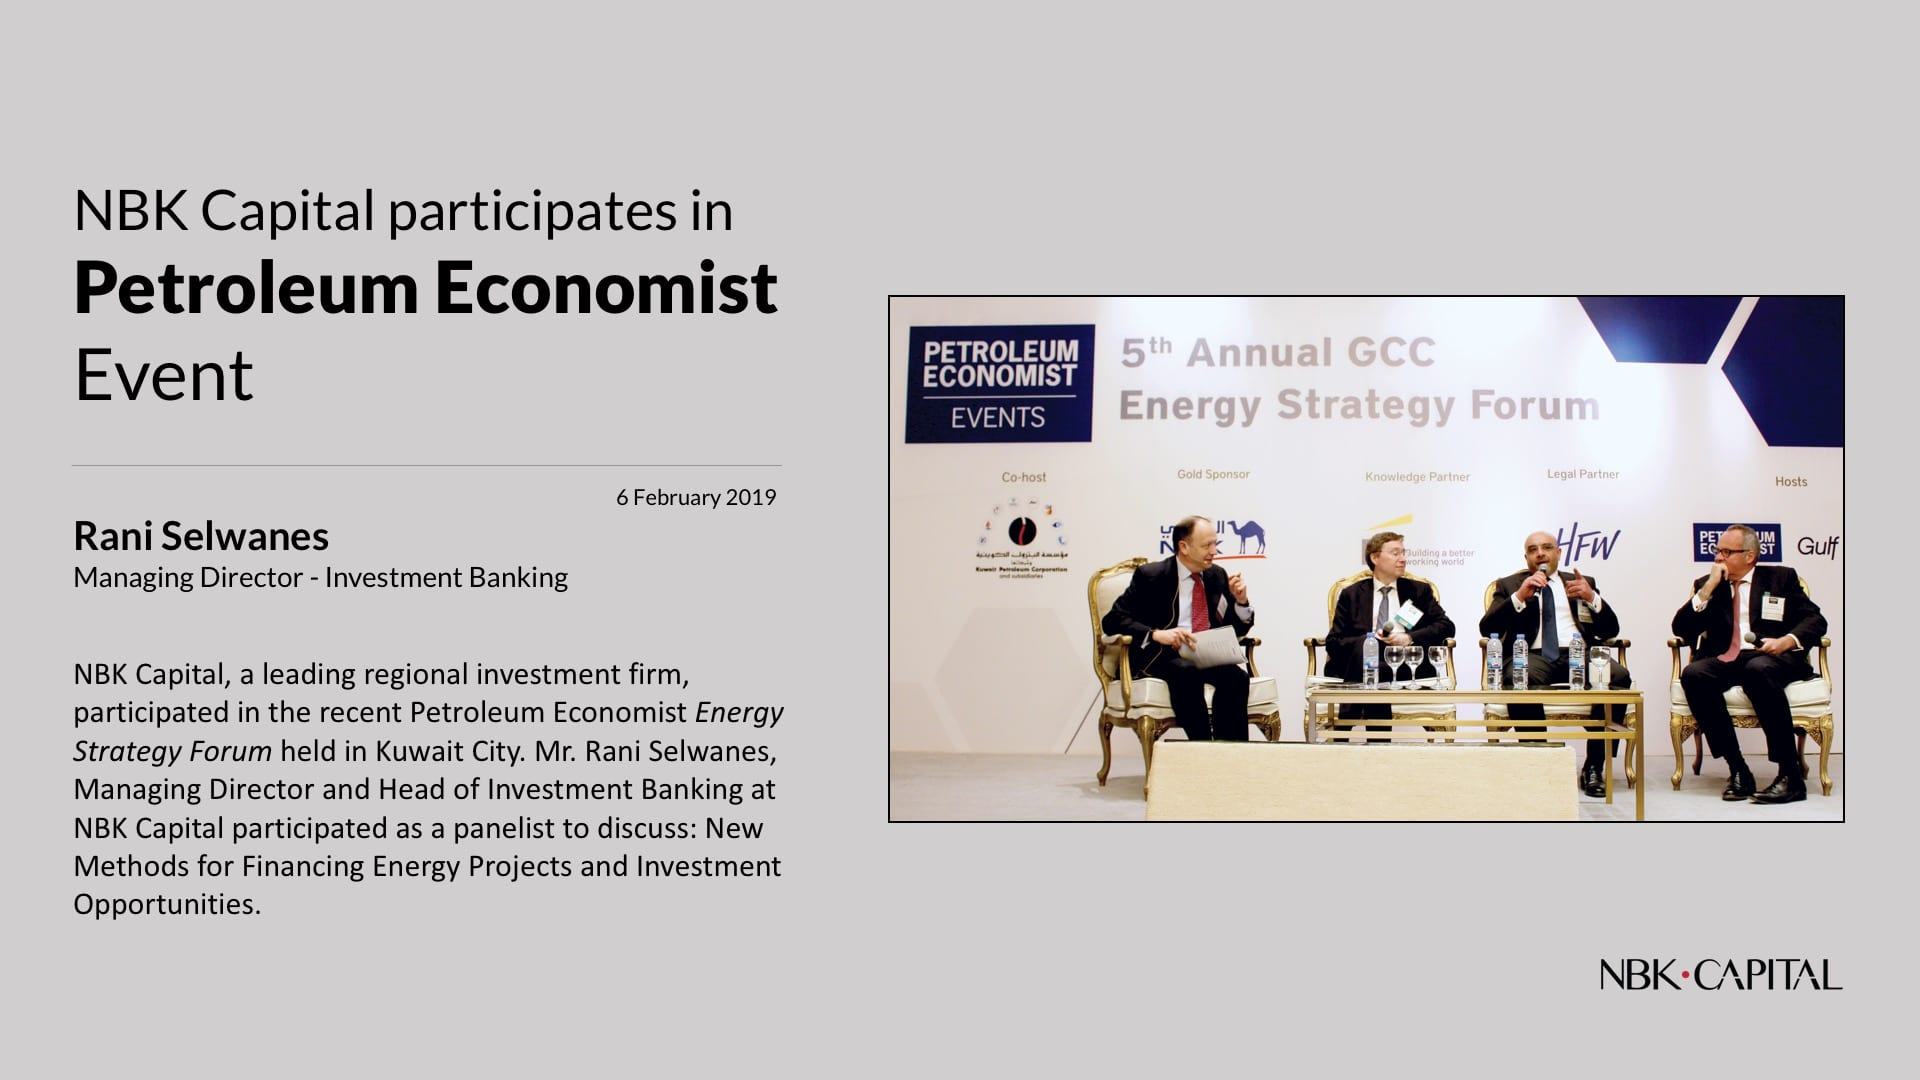 NBK Capital participates in Energy Strategy Forum